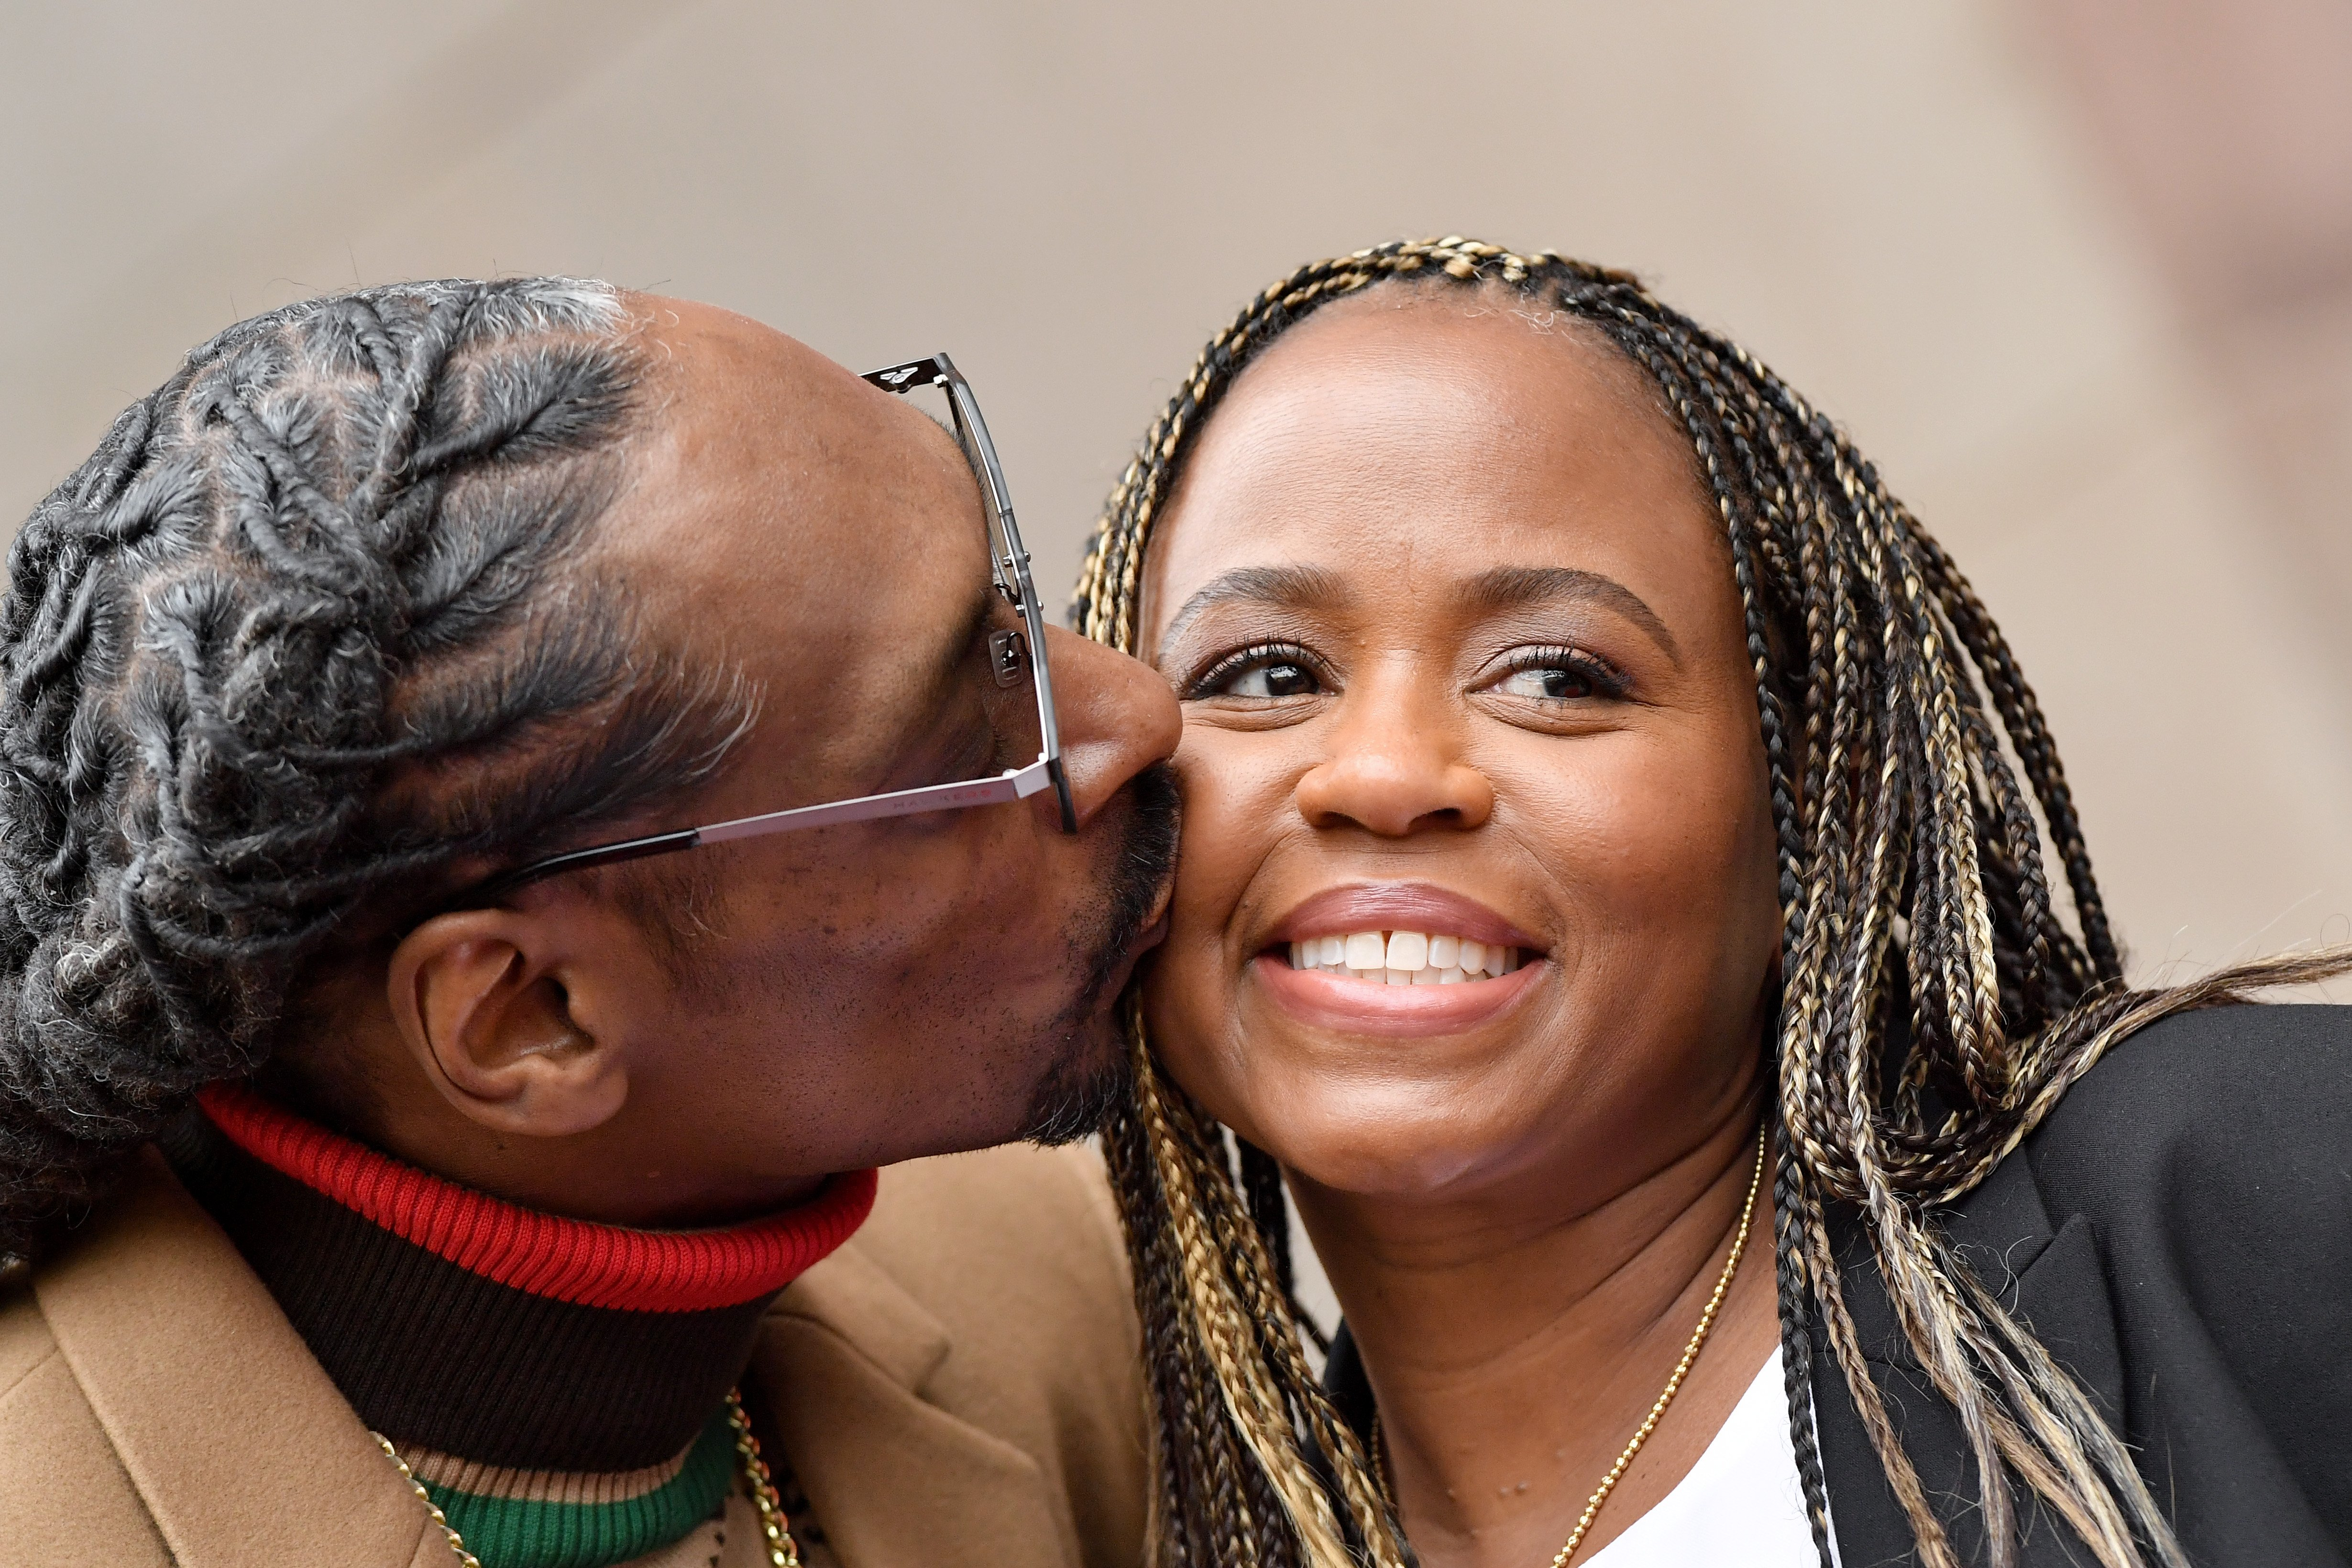 Snoop Dogg and Shante Broadus during the ceremony for Snoop Dogg's star on the Hollywood Walk of Fame on November 19, 2018 in Hollywood, California. | Photo: Getty Images